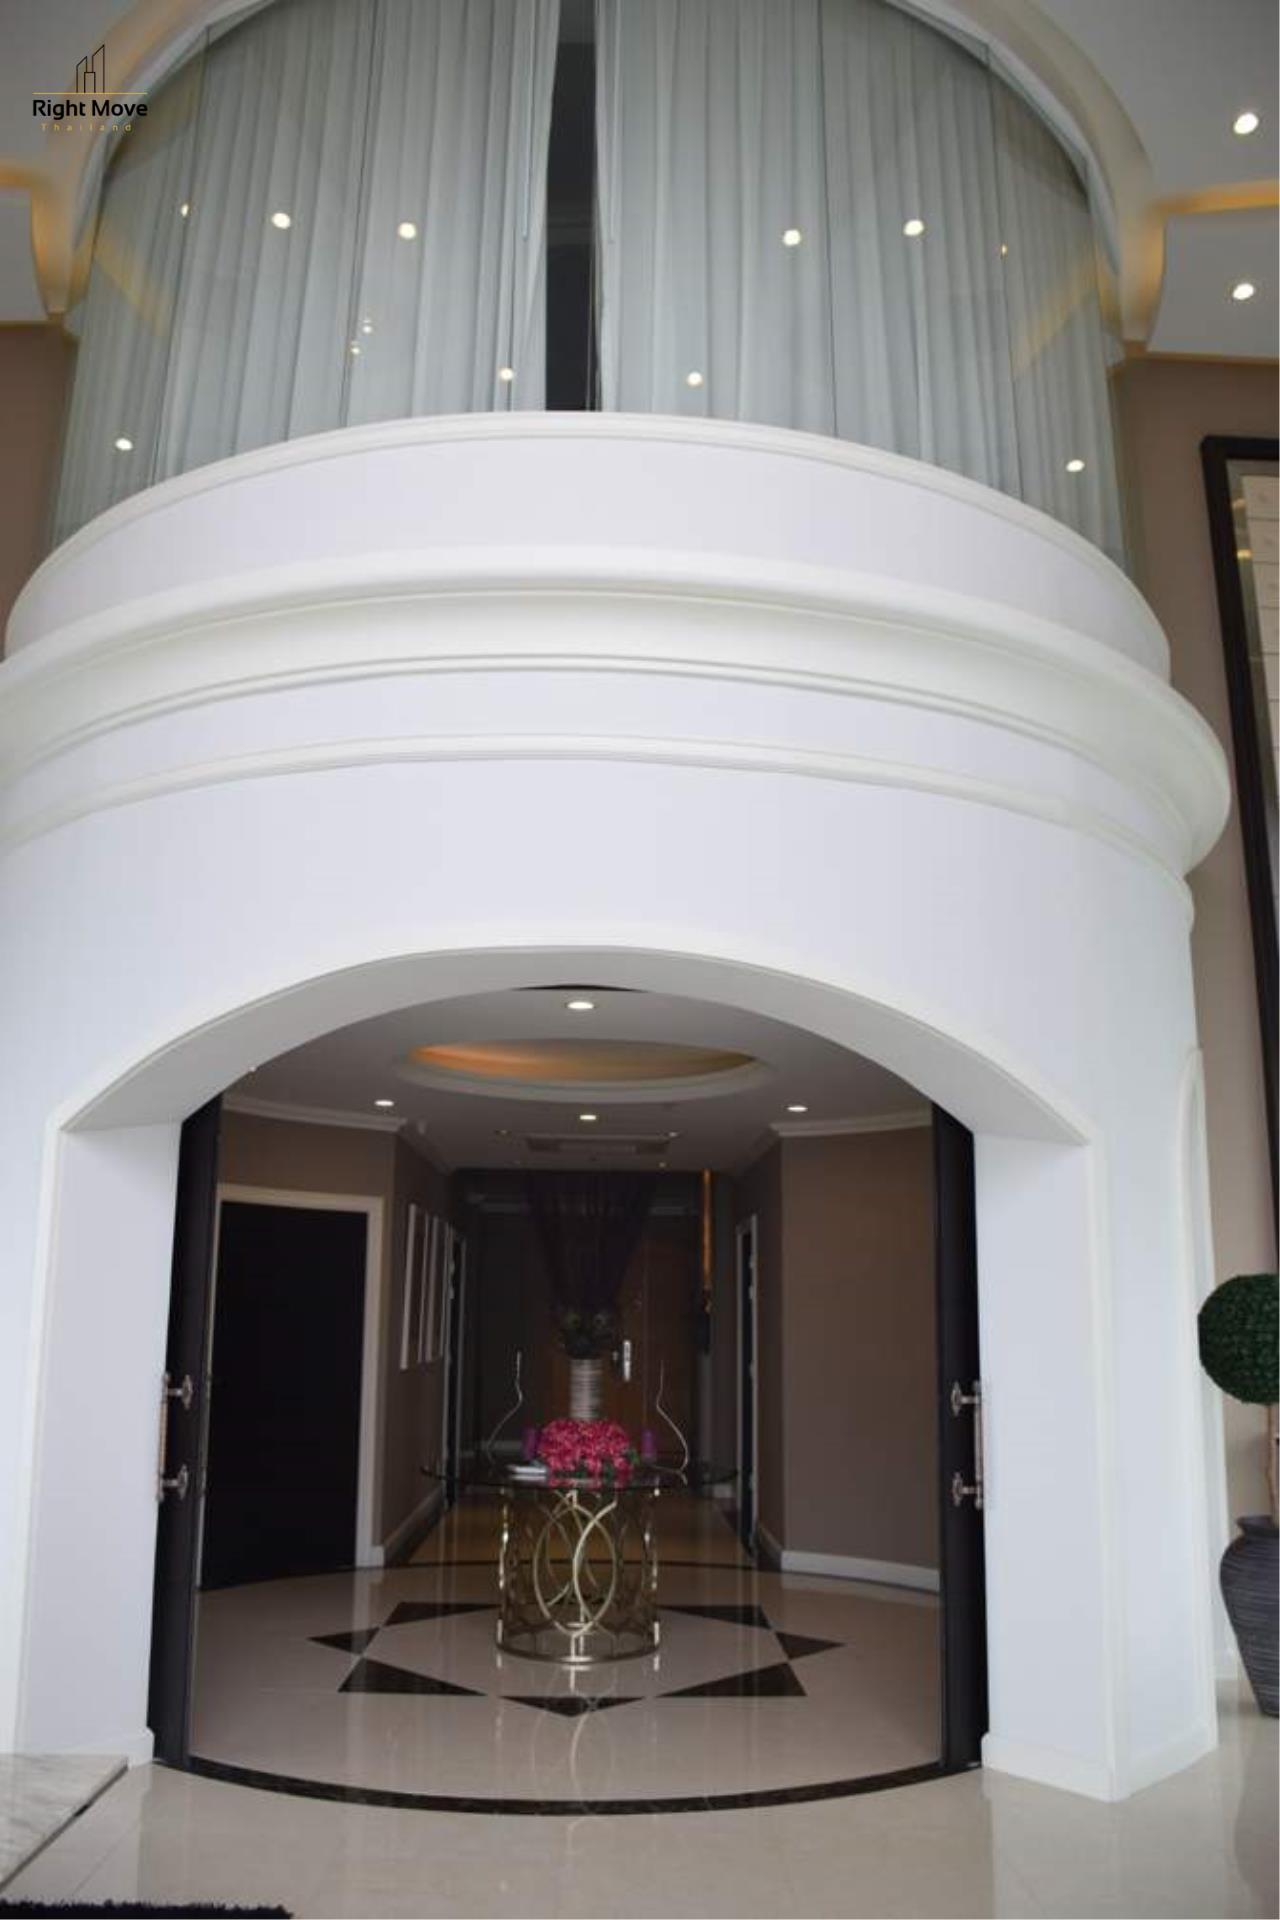 Right Move Thailand Agency's CA4297 Penthouse Duplex Millennium Residence For Rent - 250,000 THB - 316.85 Sqm 14